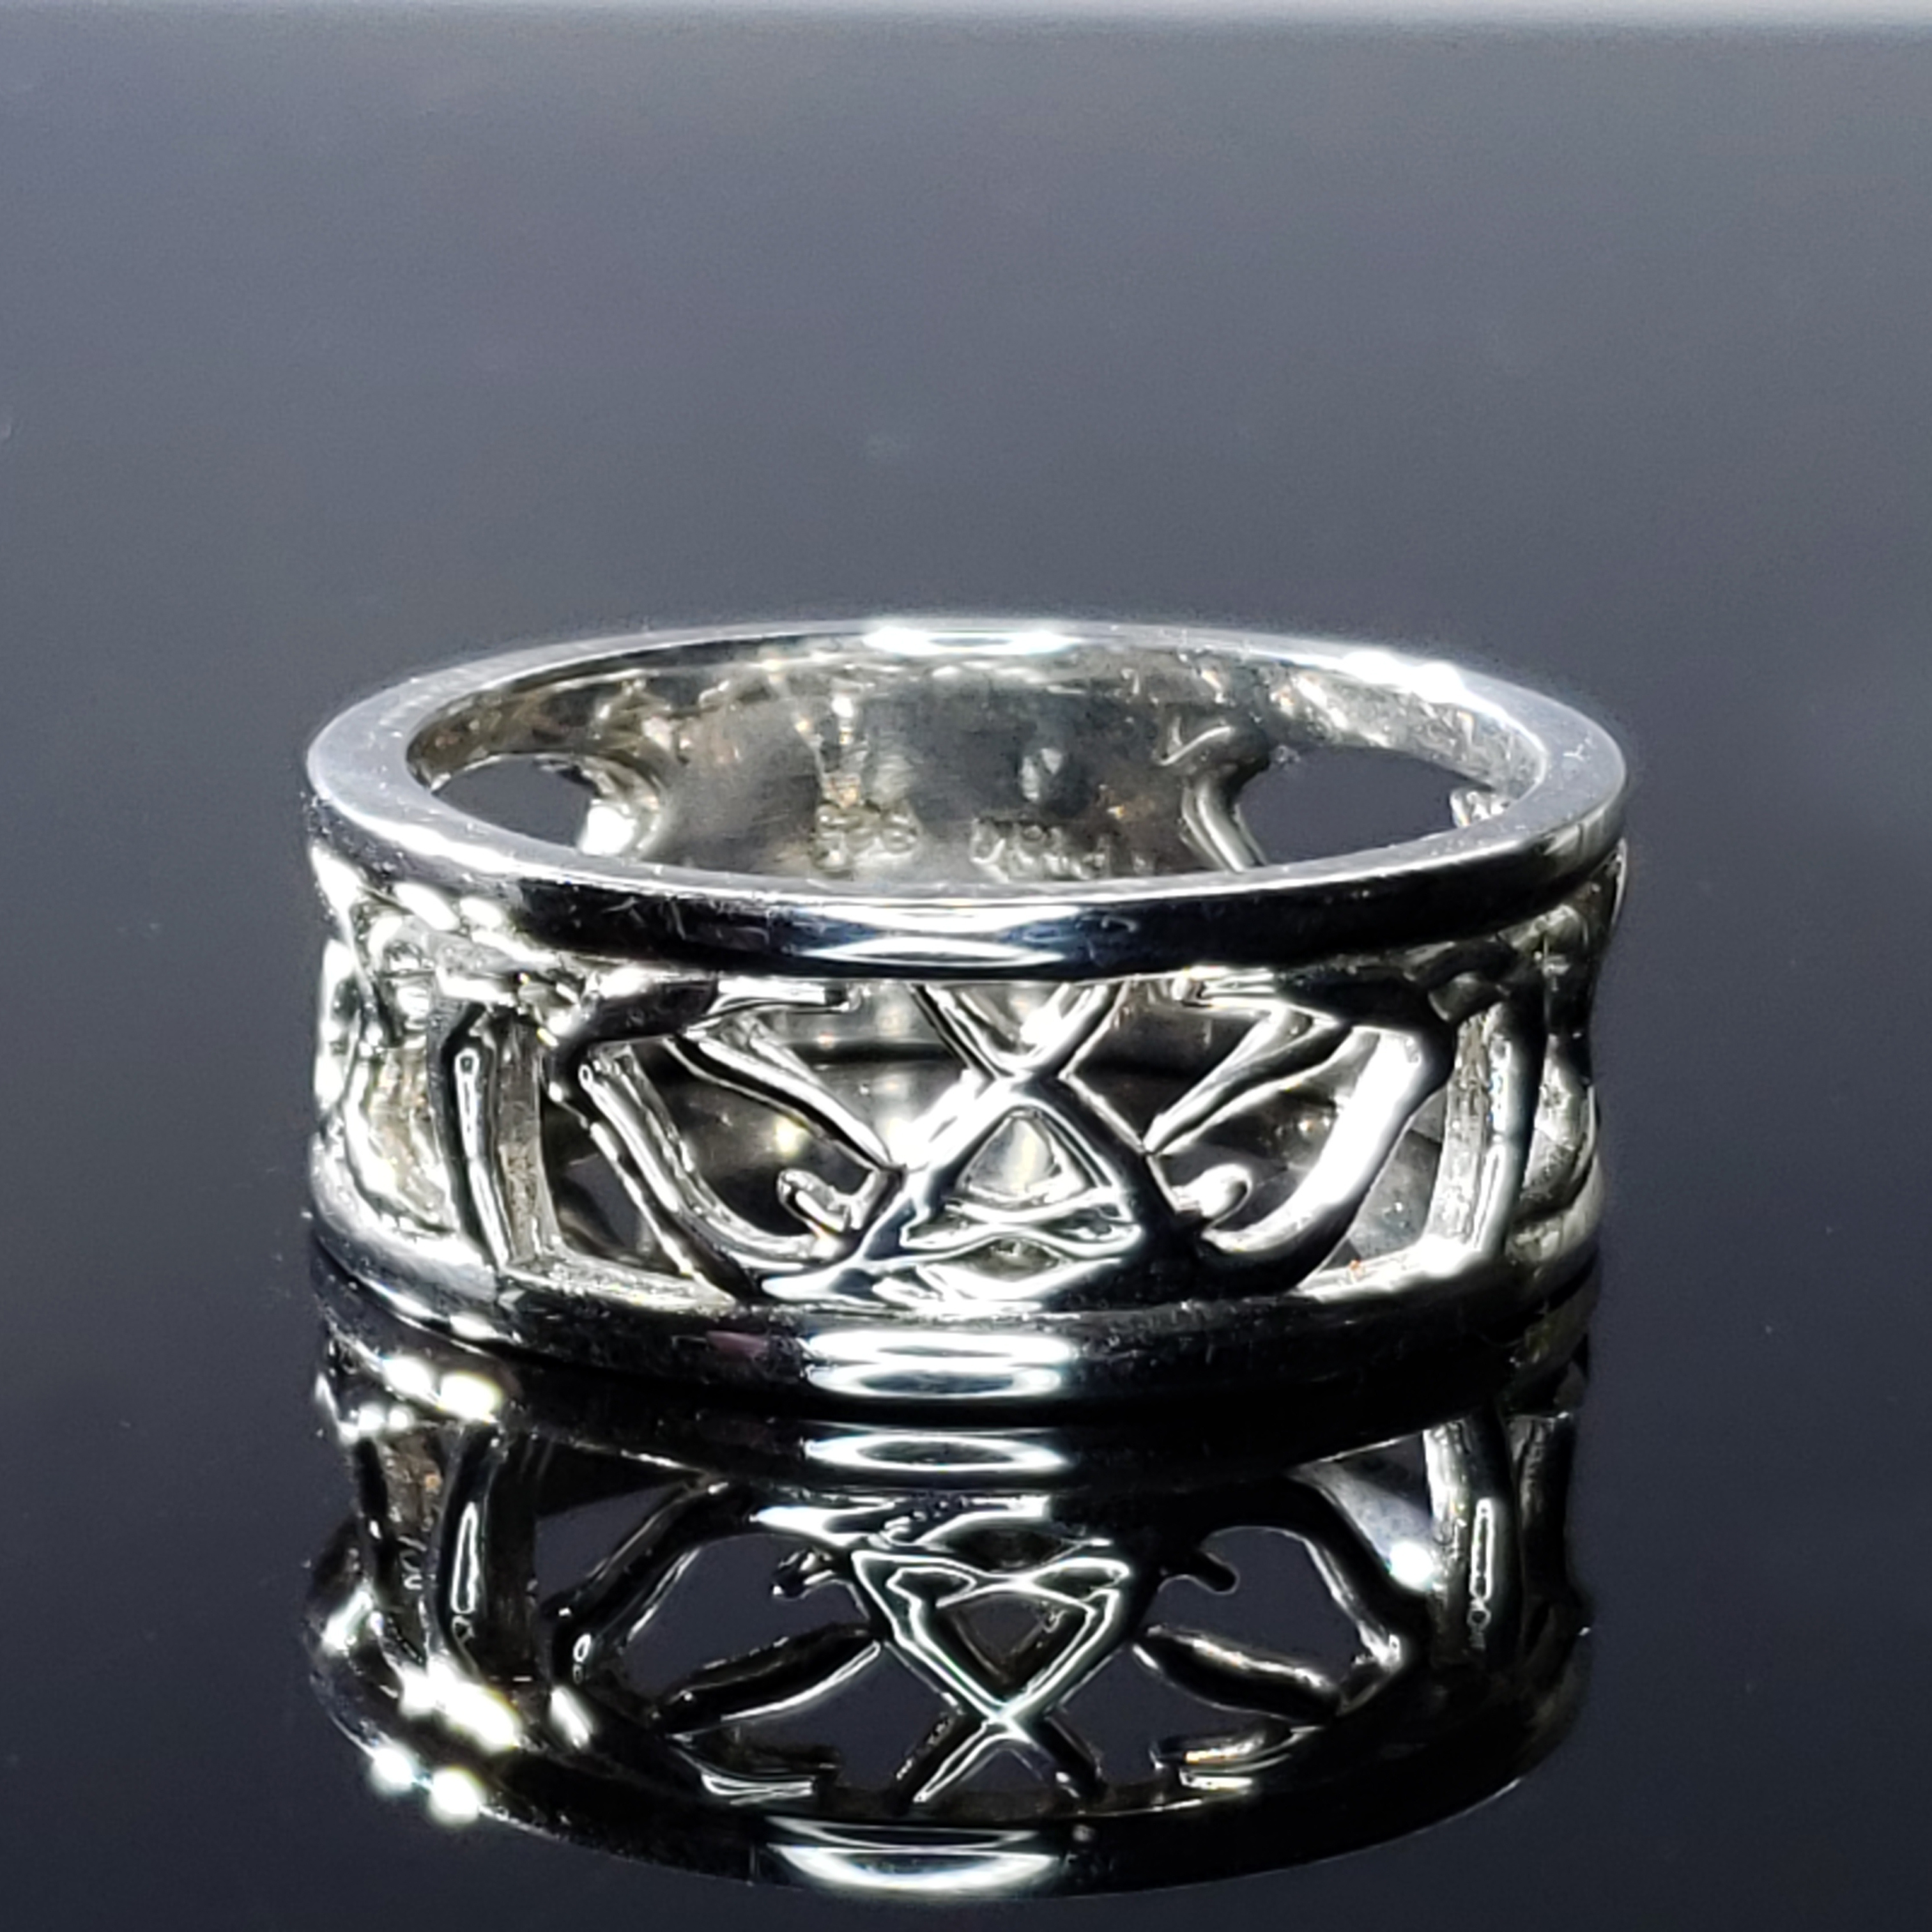 Antlered Deer Antler Ring-10mm